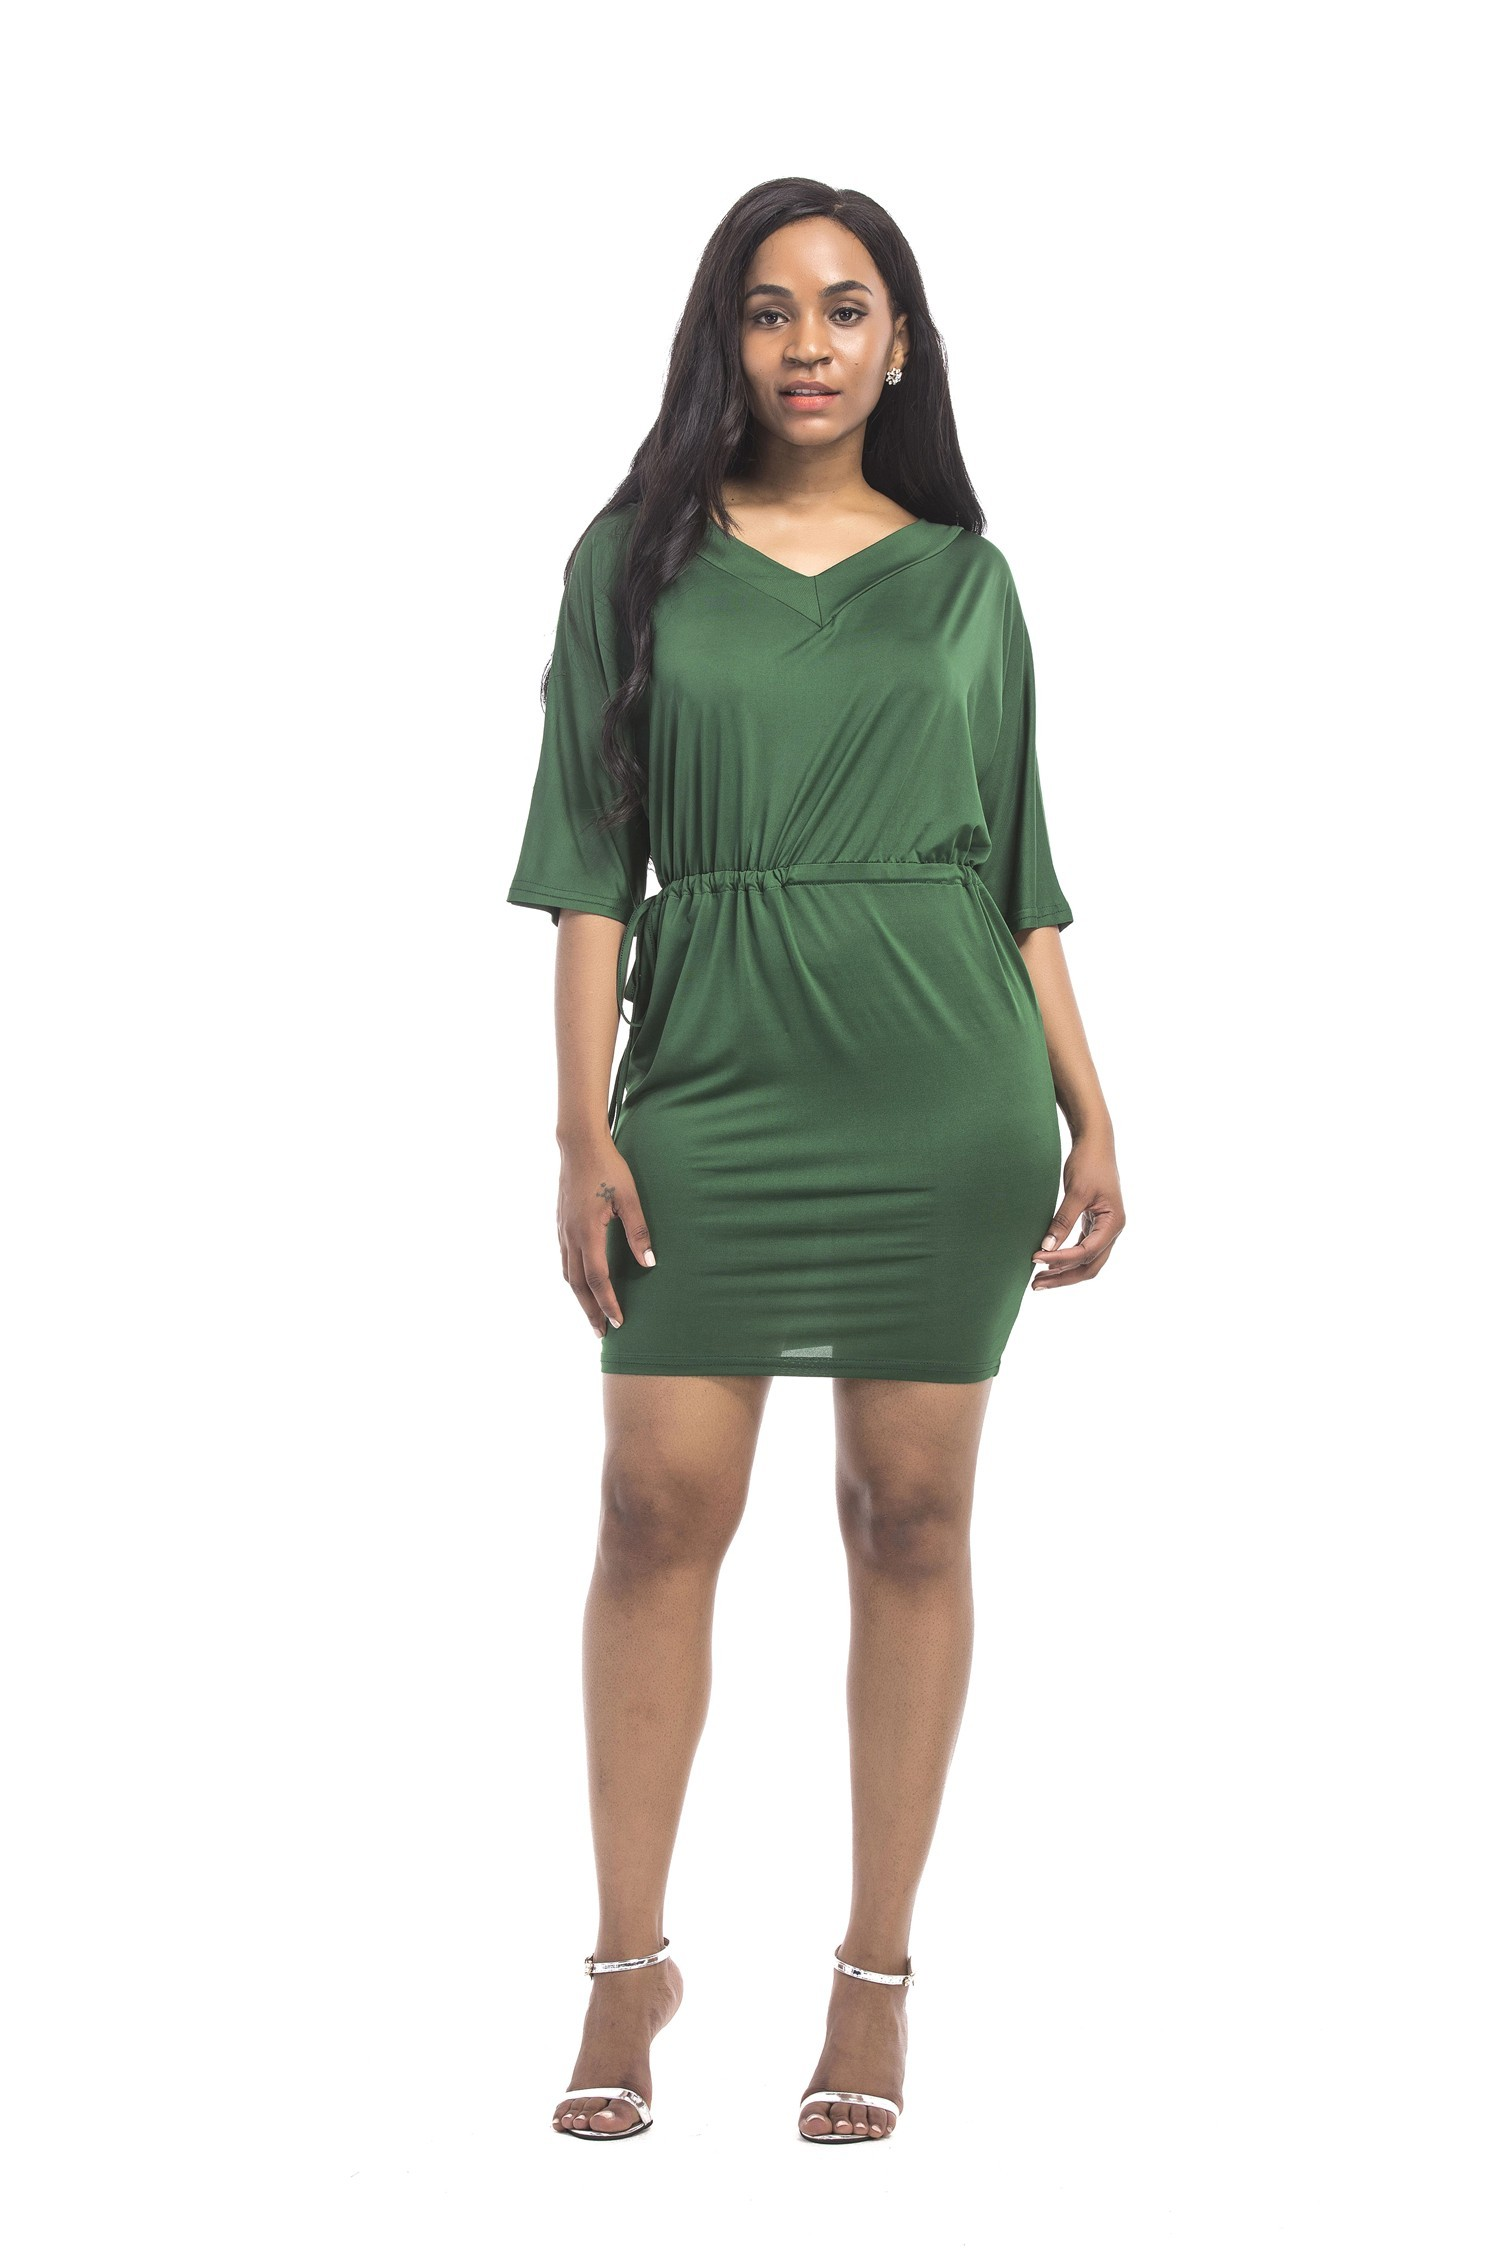 V Neck Short Mini Dark Green Jersey Plus Size Dress With Sleeves